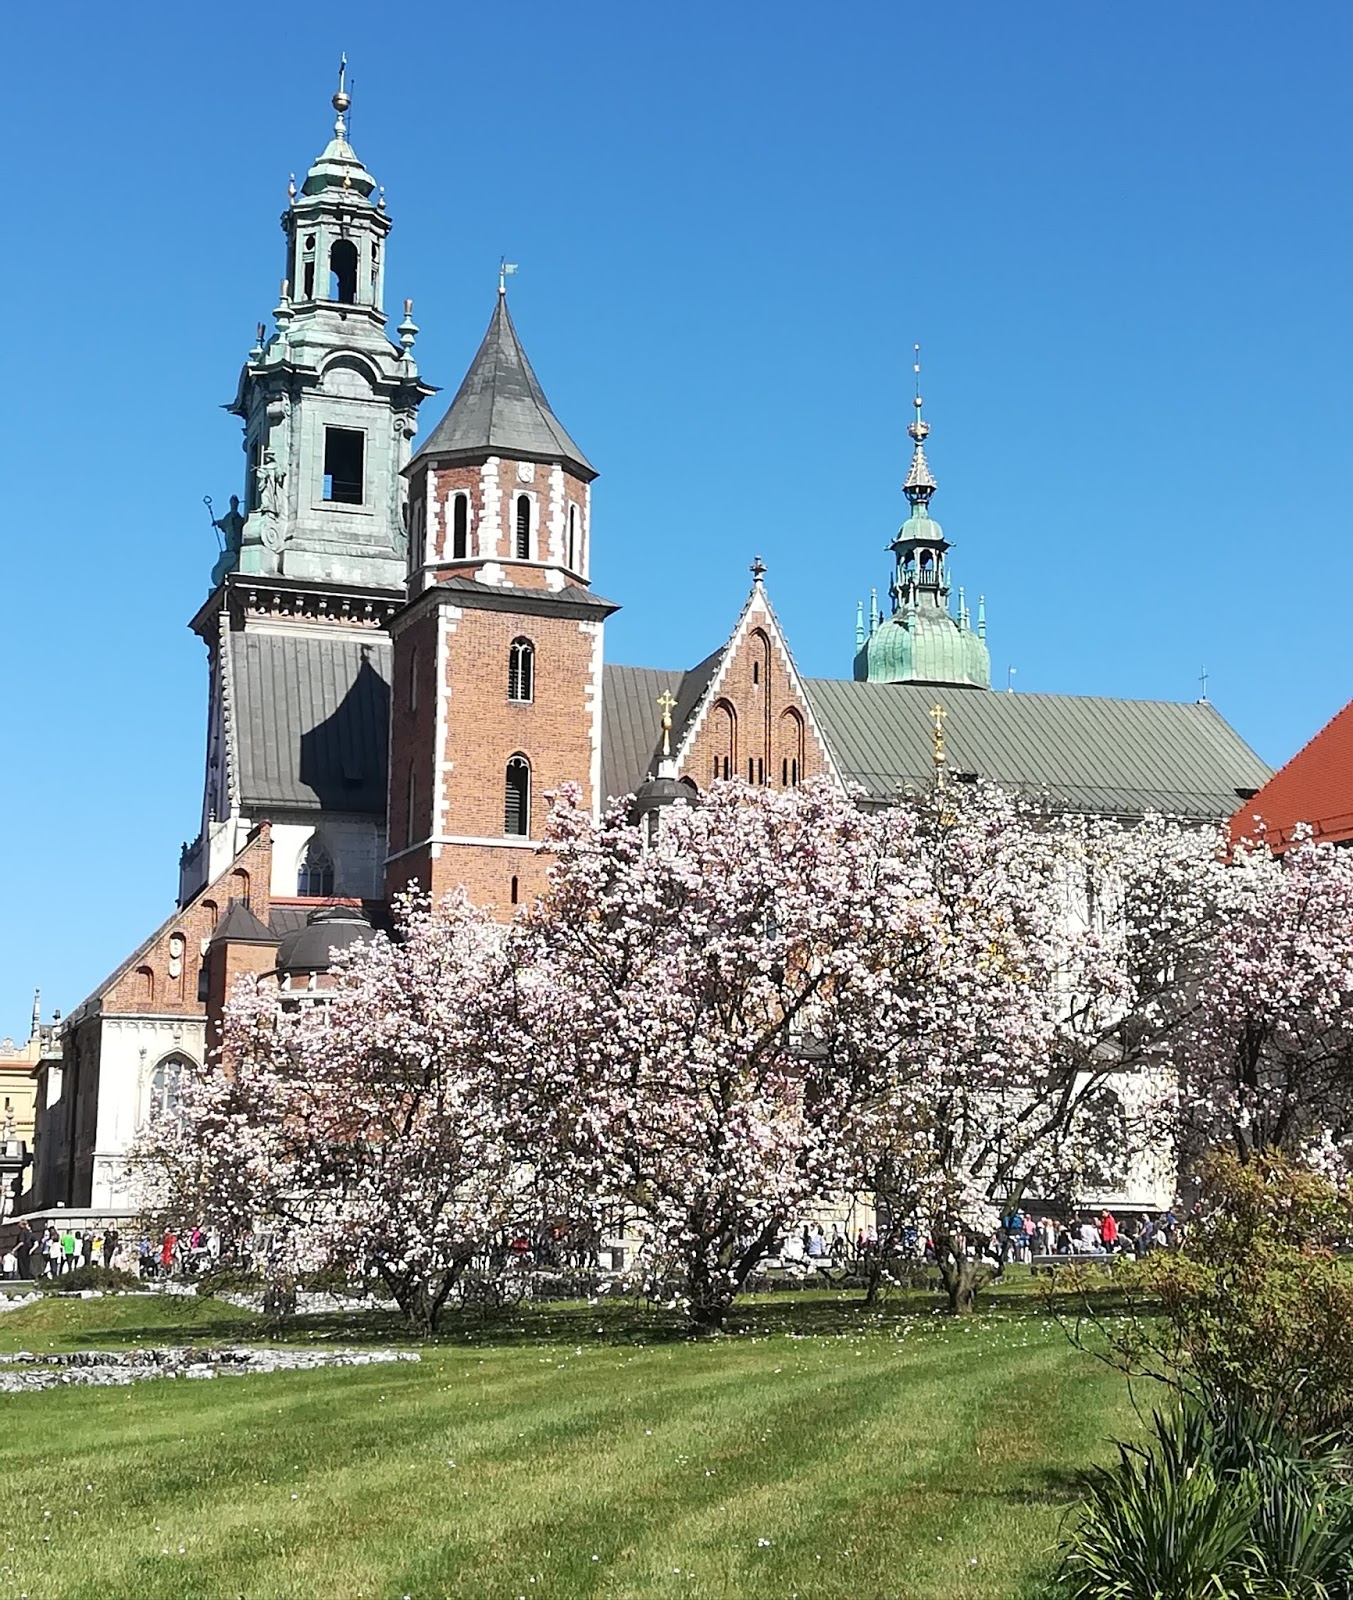 Visit Krakow Poland: Best Travel Guide To Krakow, Poland